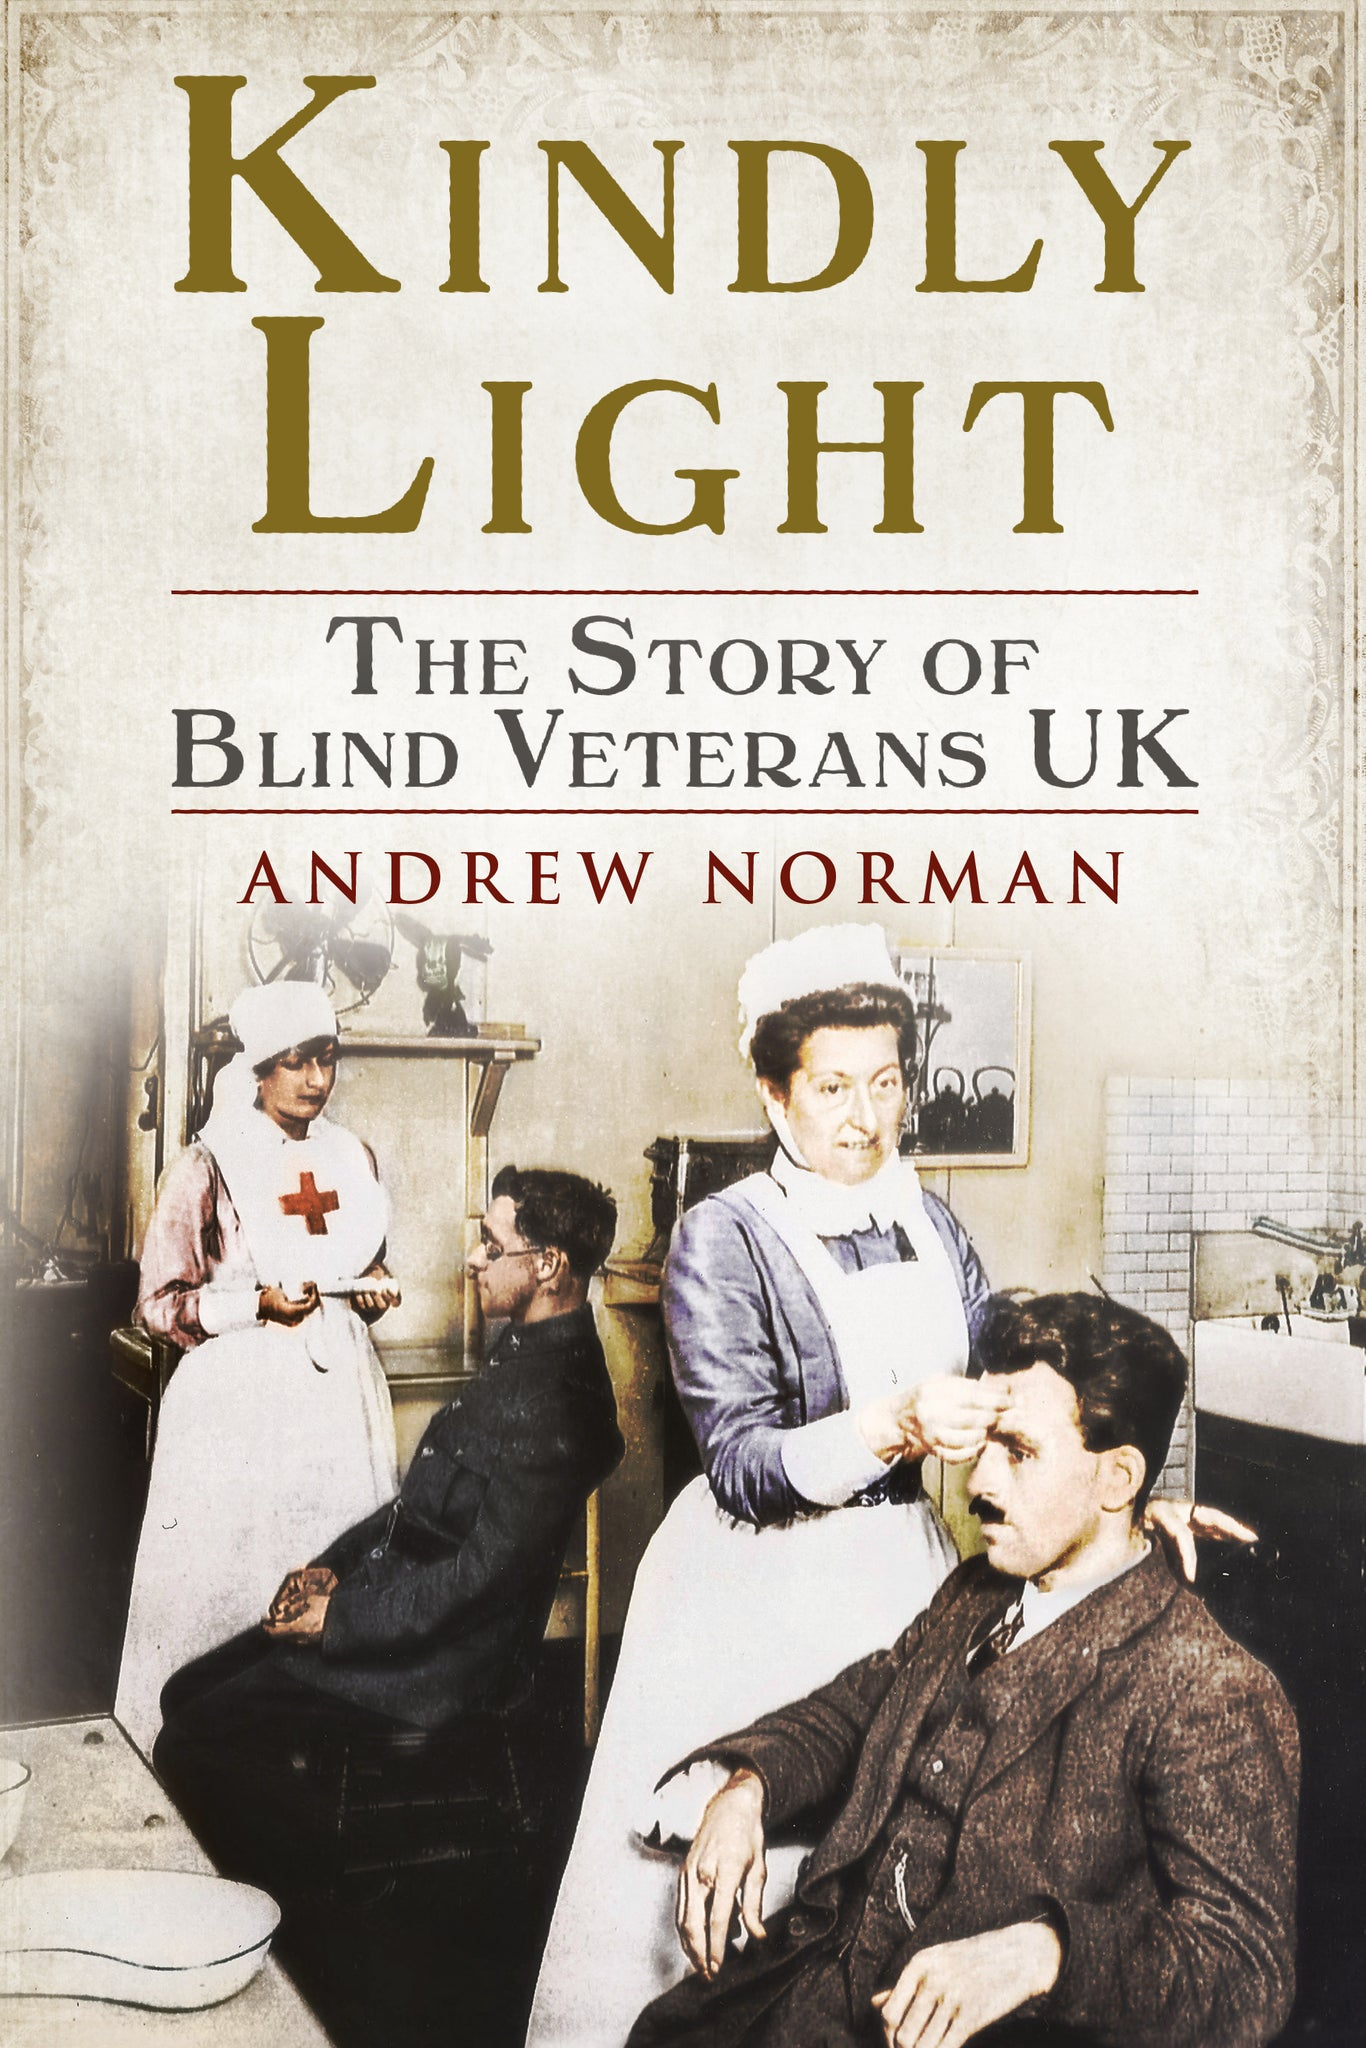 Kindly Light: The Story of Blind Veterans UK